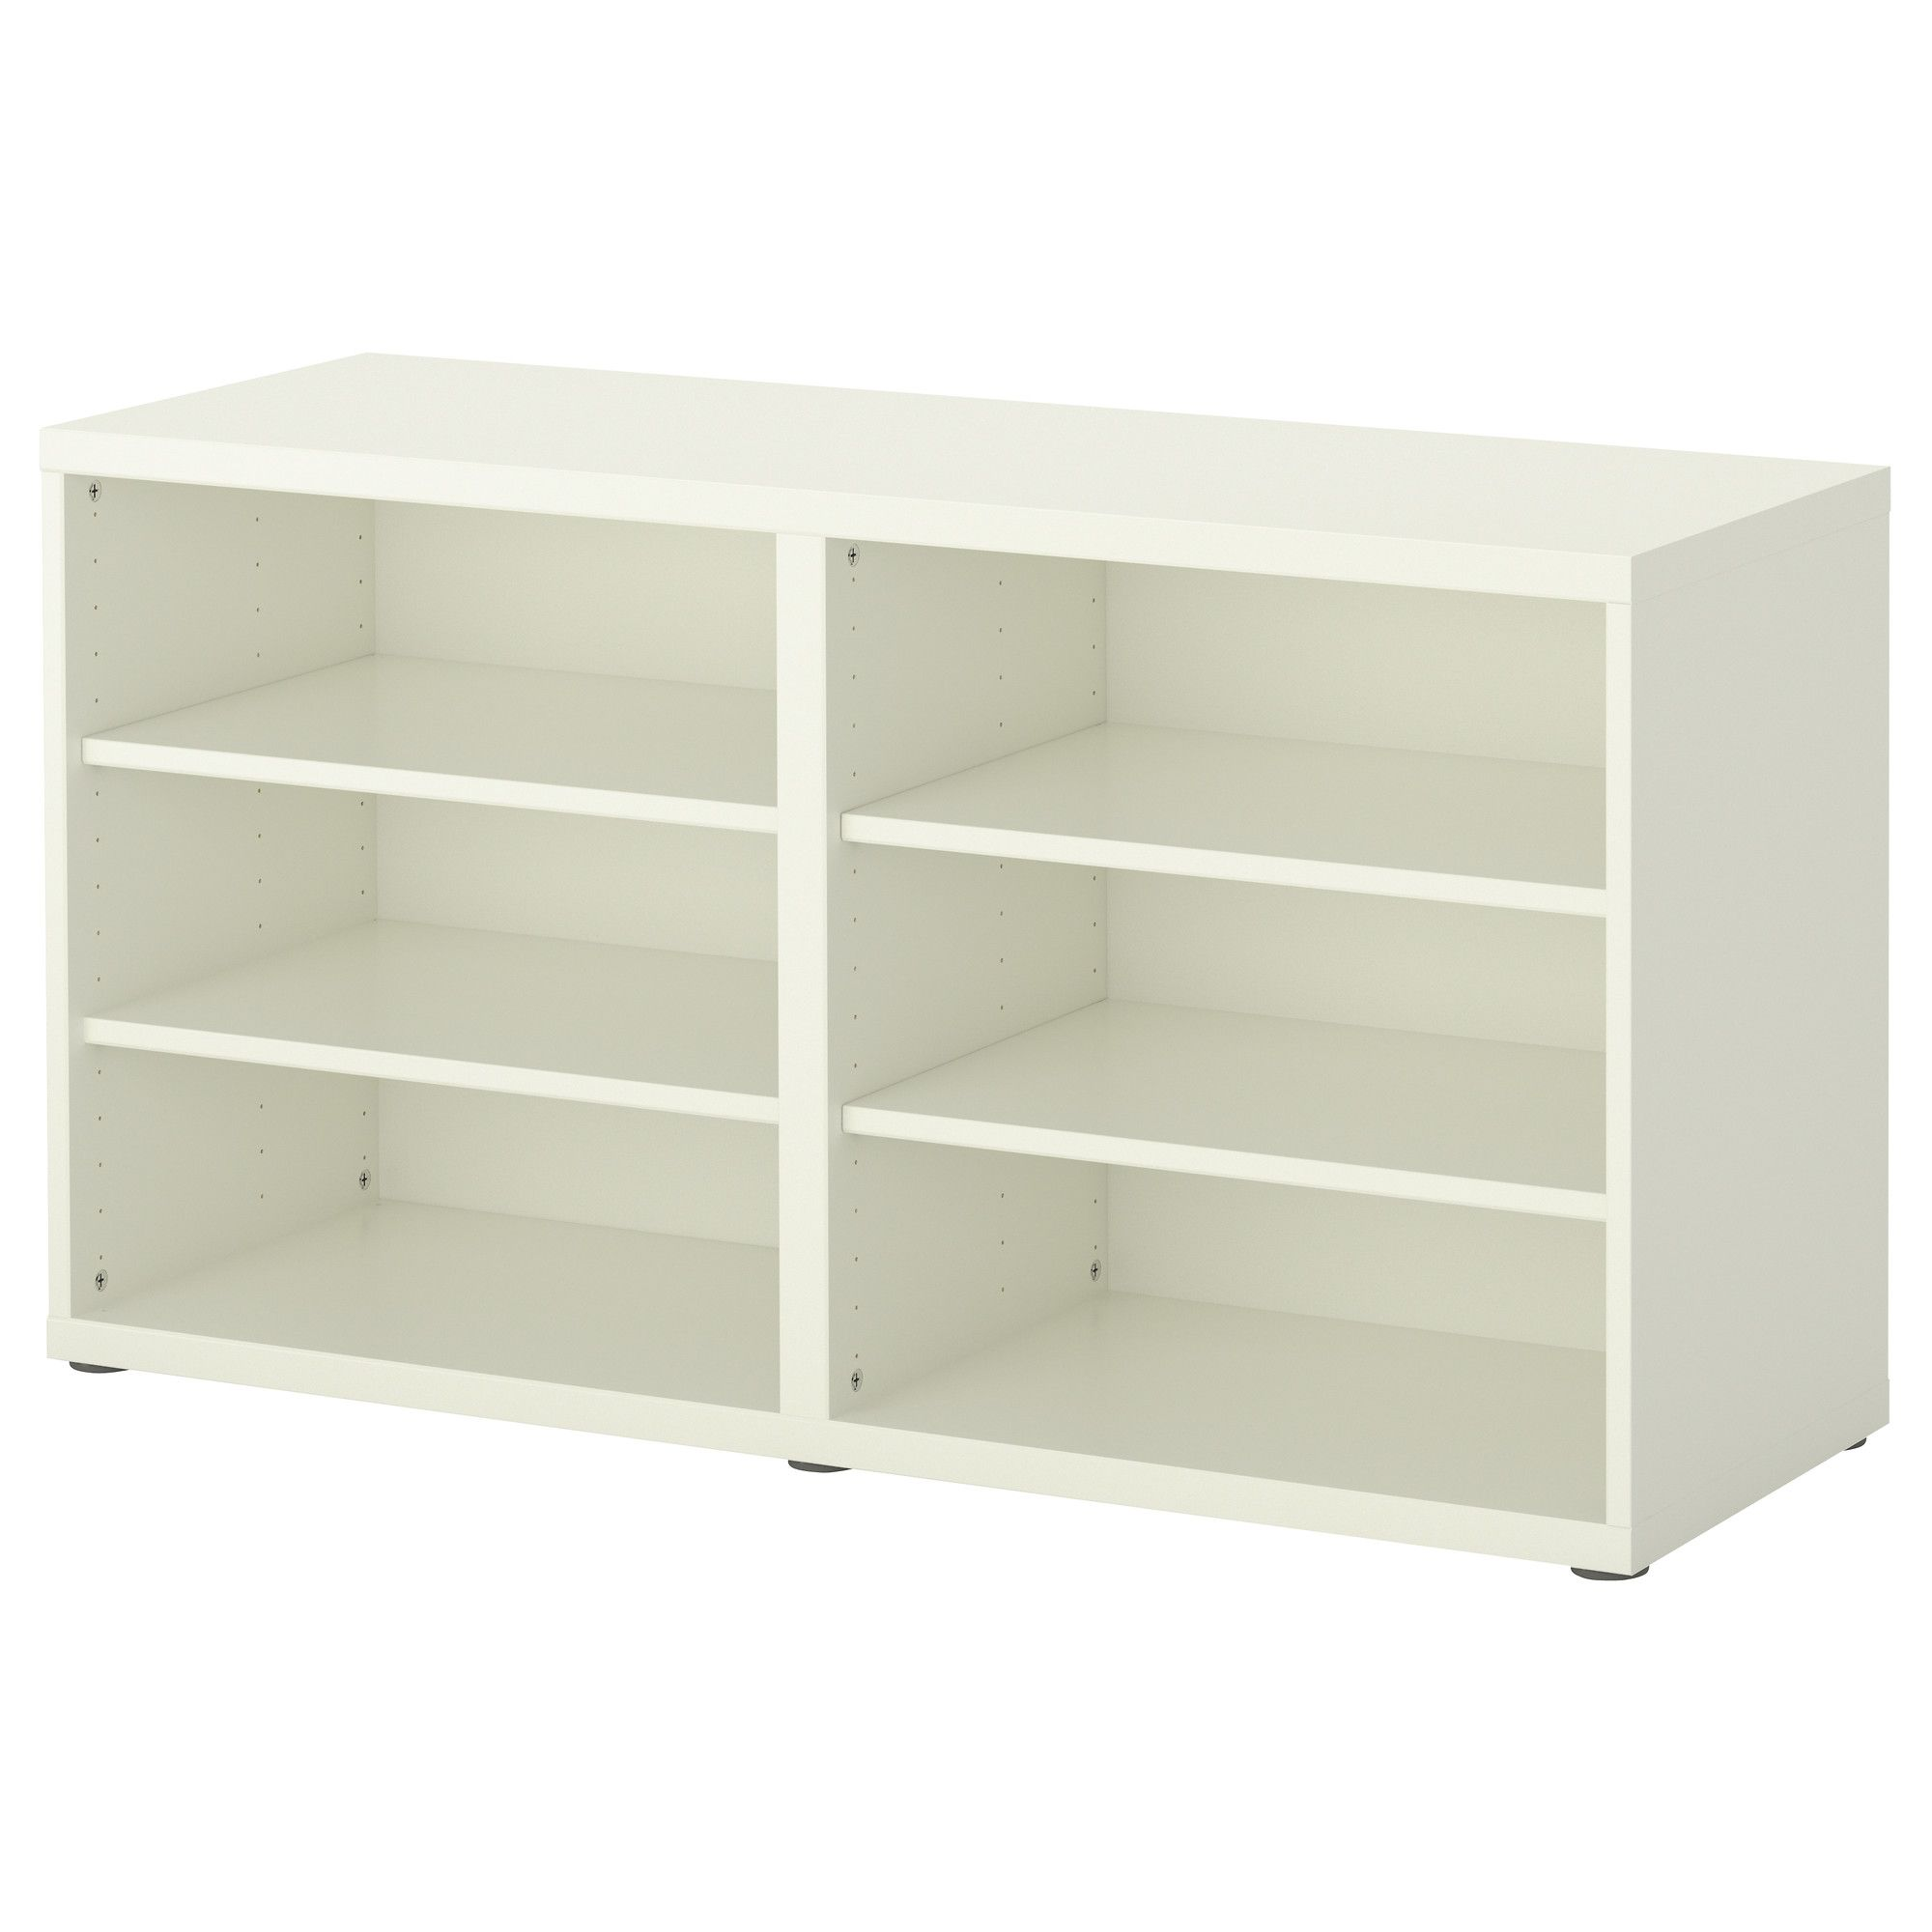 BESTÅ Shelf unit/height extension unit white IKEA 70